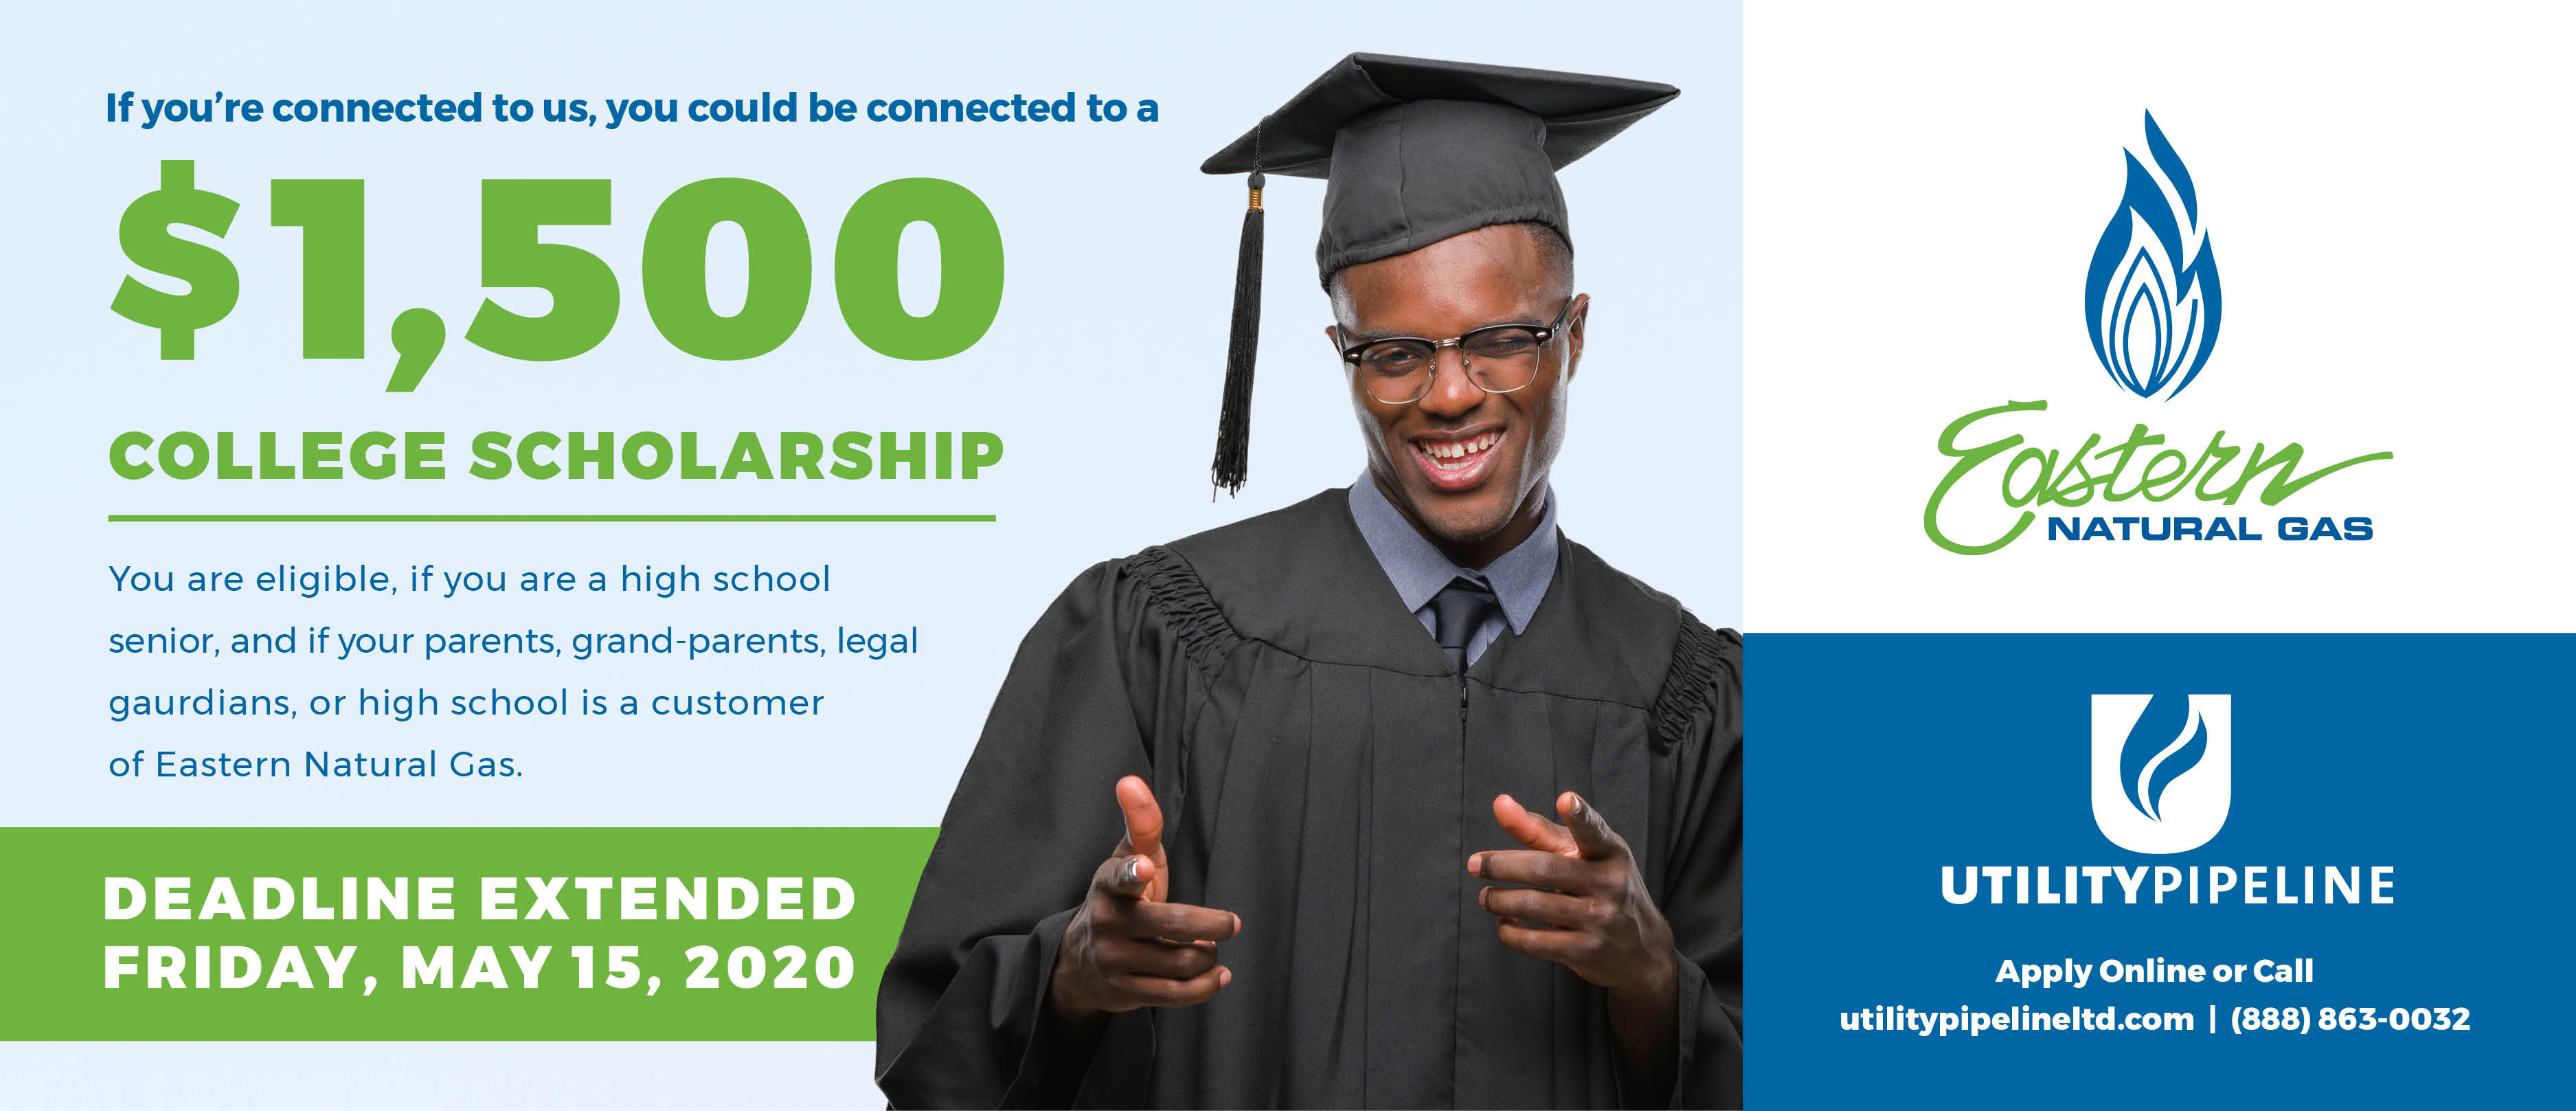 Eastern Natural Gas Scholarship Ad